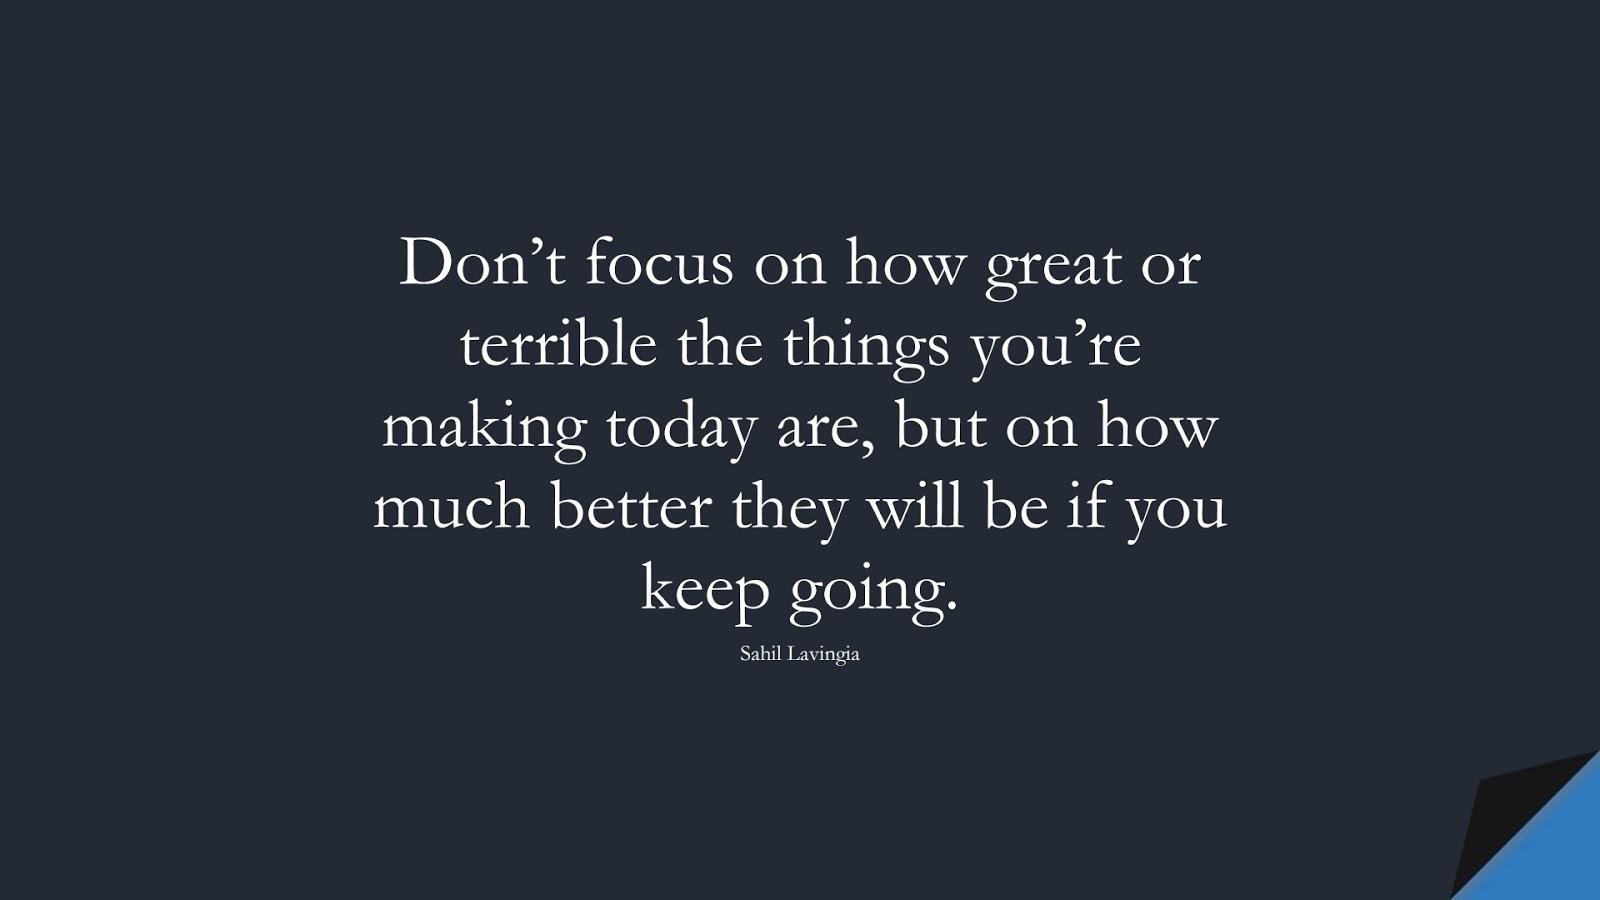 Don't focus on how great or terrible the things you're making today are, but on how much better they will be if you keep going. (Sahil Lavingia);  #EncouragingQuotes